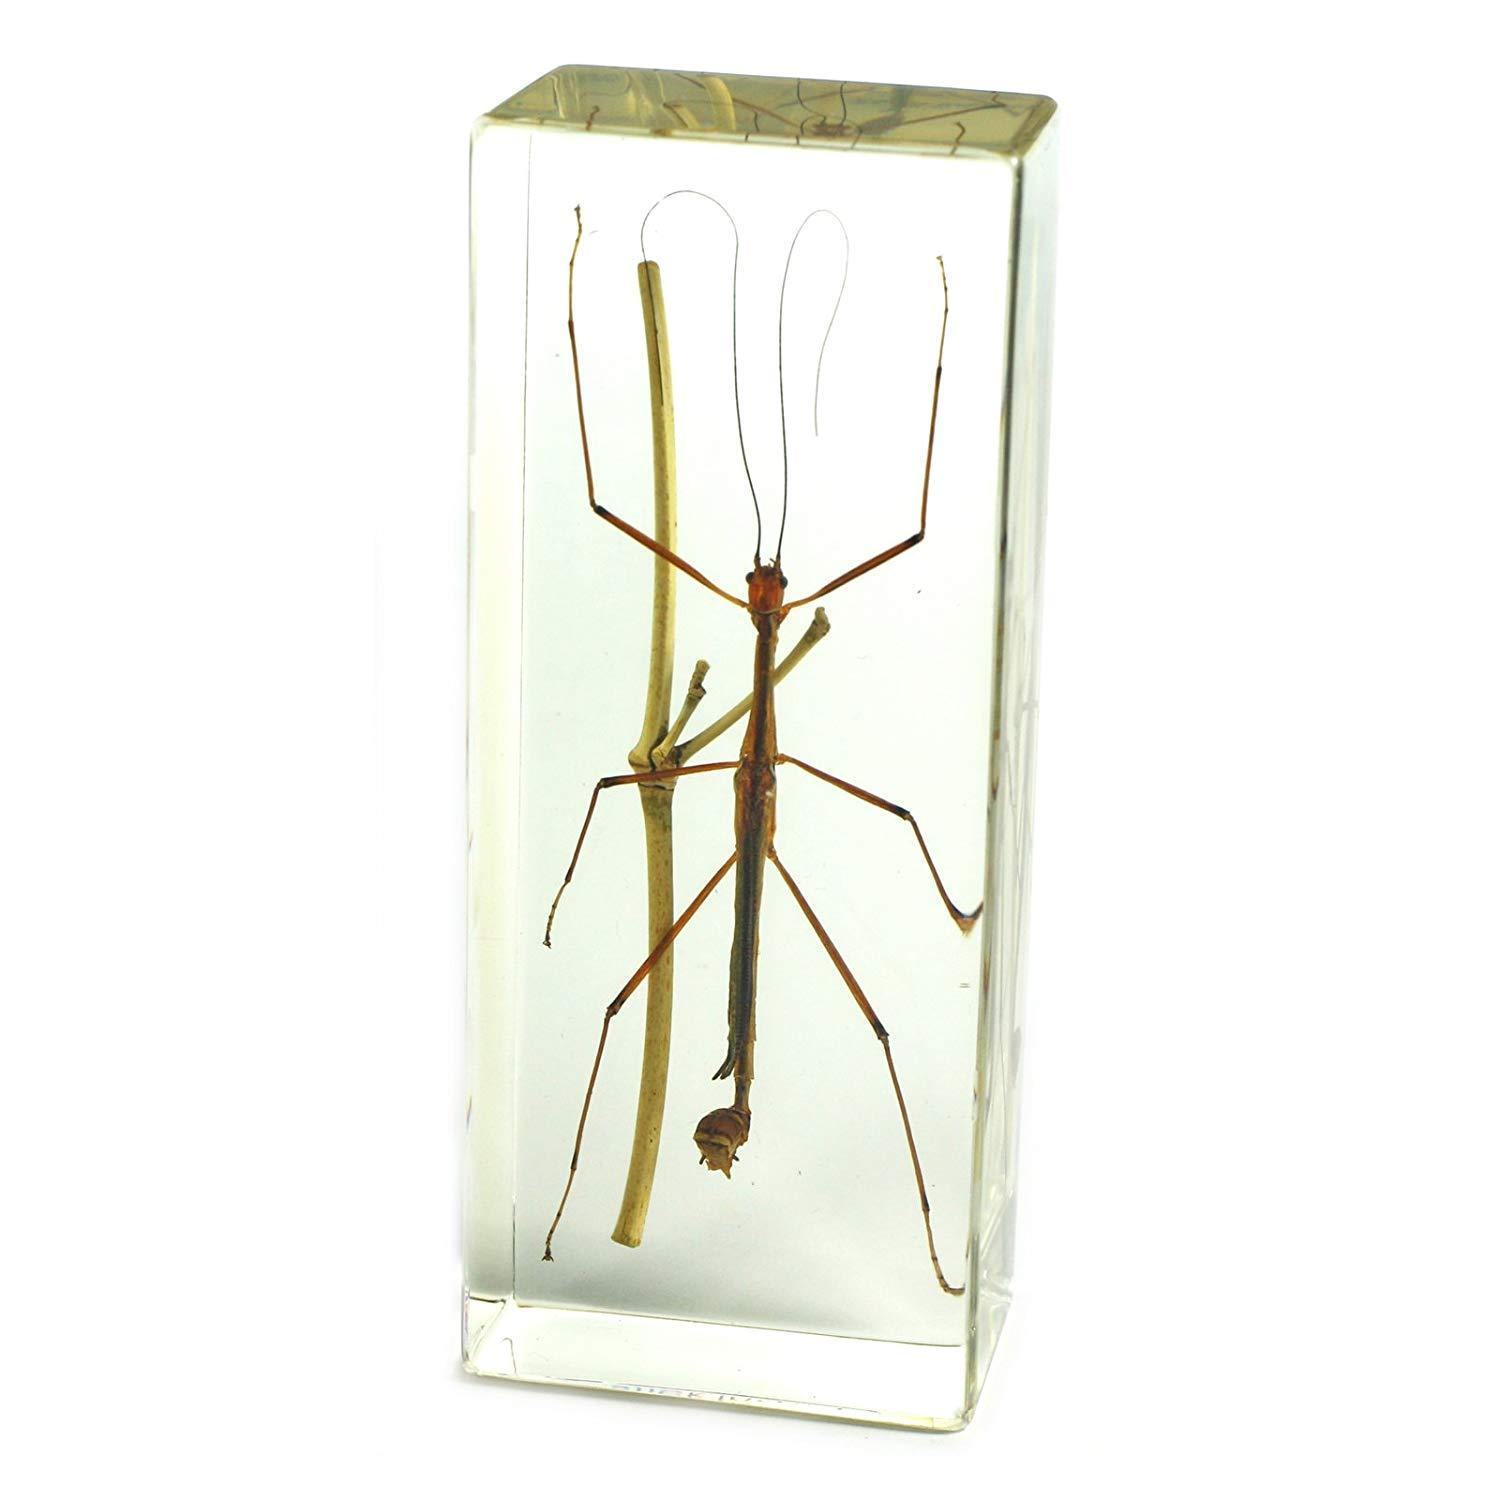 "Primary image for Vintage Real Stick Bug Insect Phasmatodea Acrylic Paperweight (4.4x1.6x1.1"")"